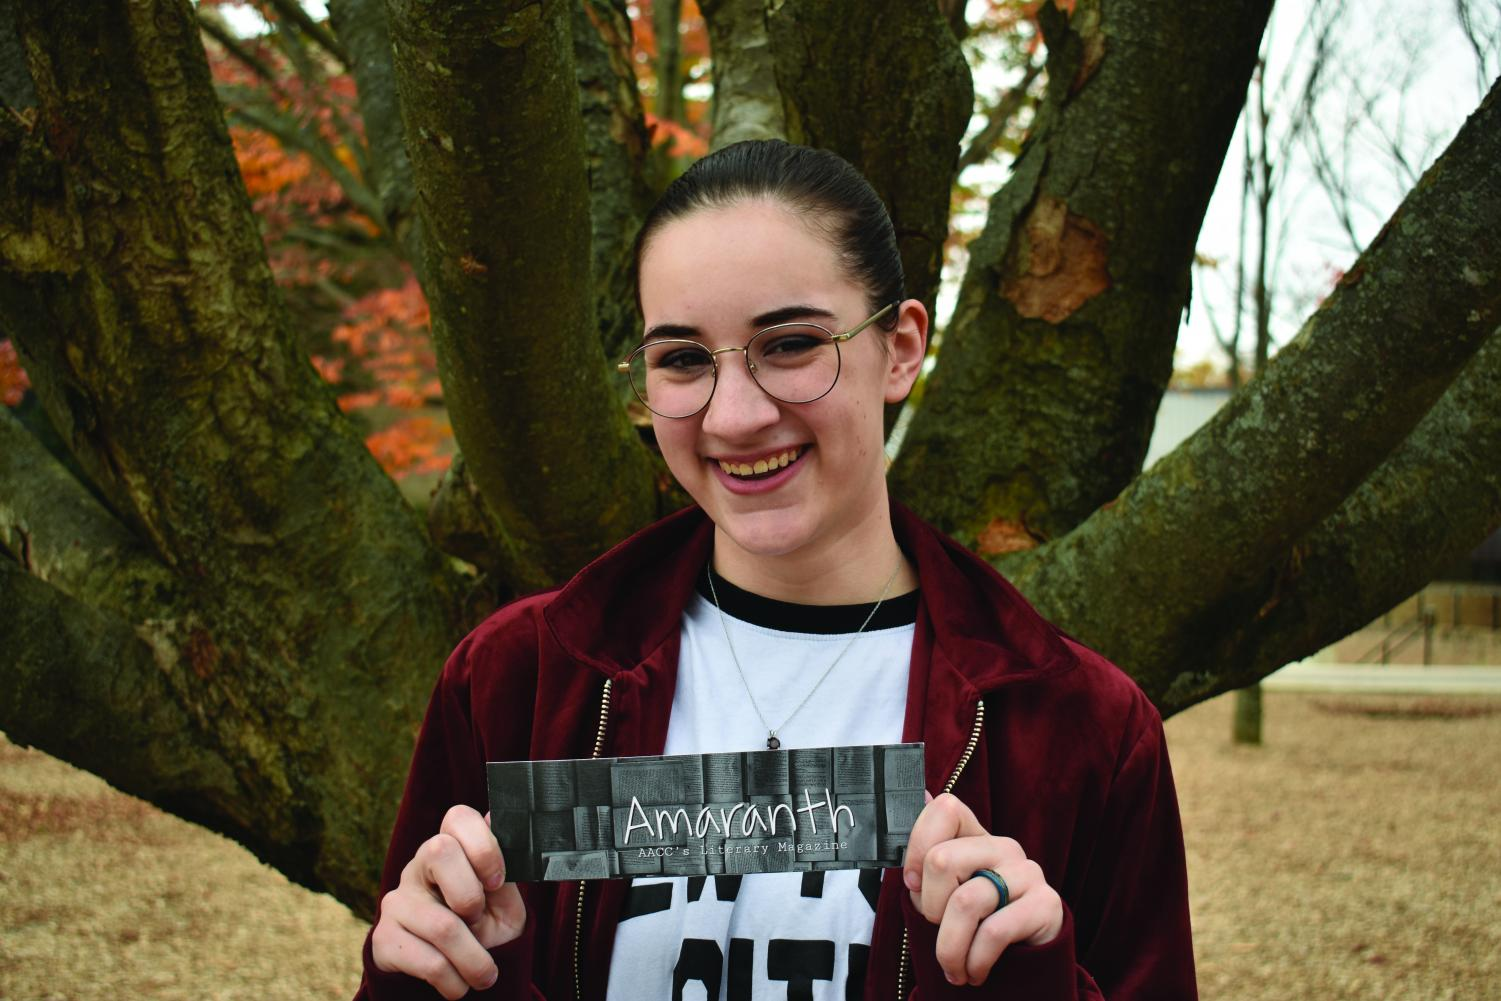 Ren Bishop, a second-year psychology student, was the editor of Amaranth for the award-winning edition